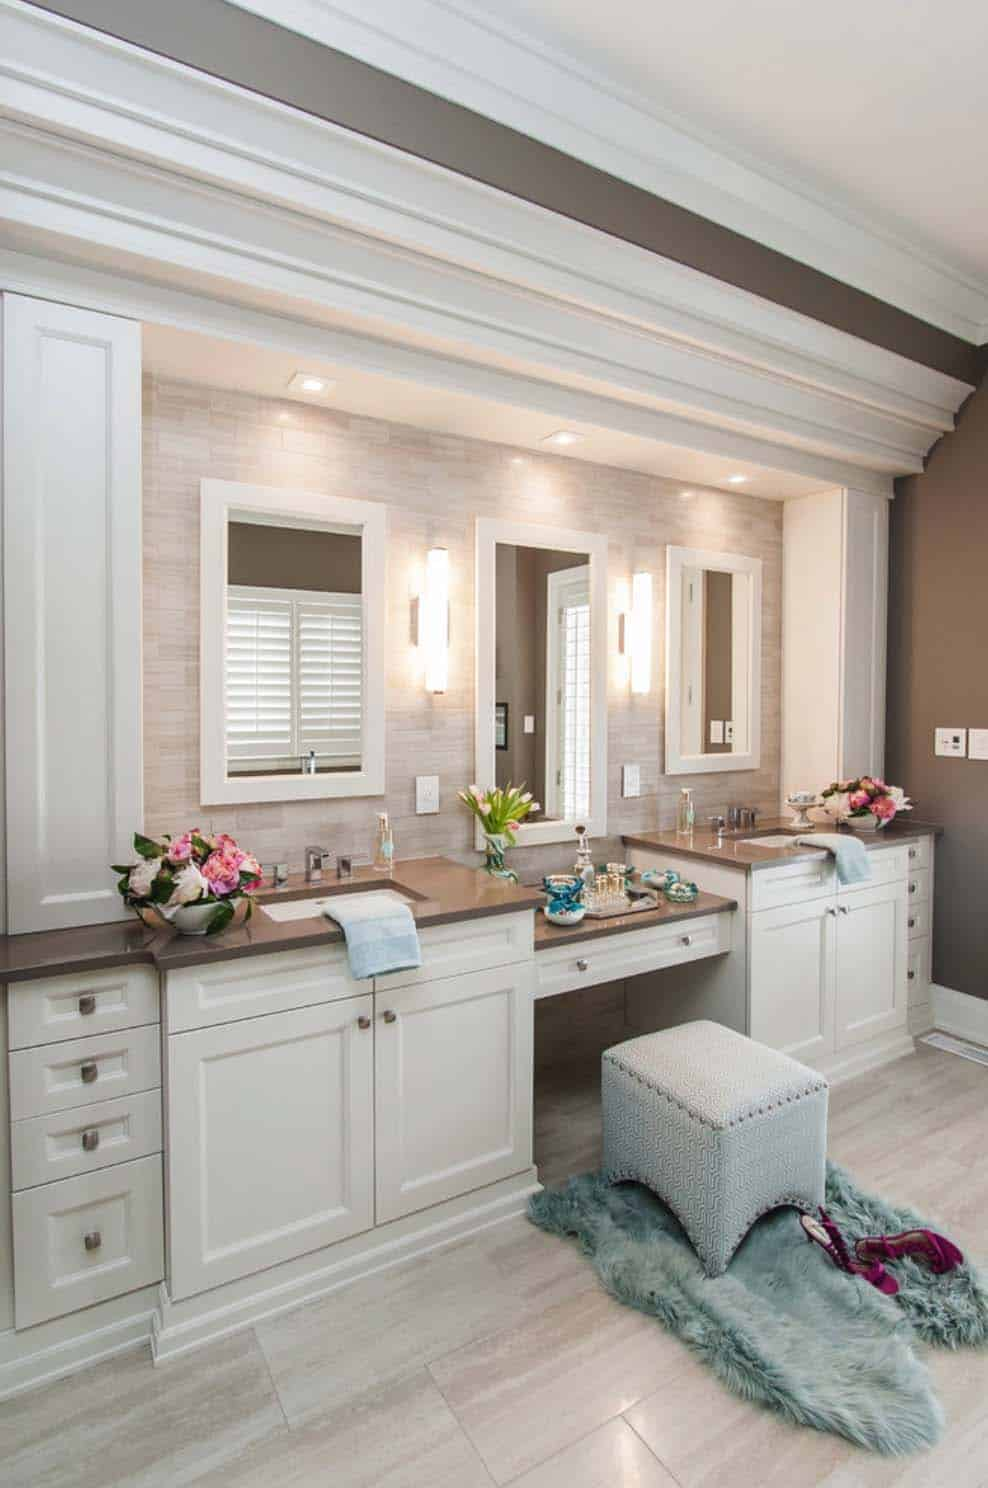 53 most fabulous traditional style bathroom designs ever for Home bathroom design ideas